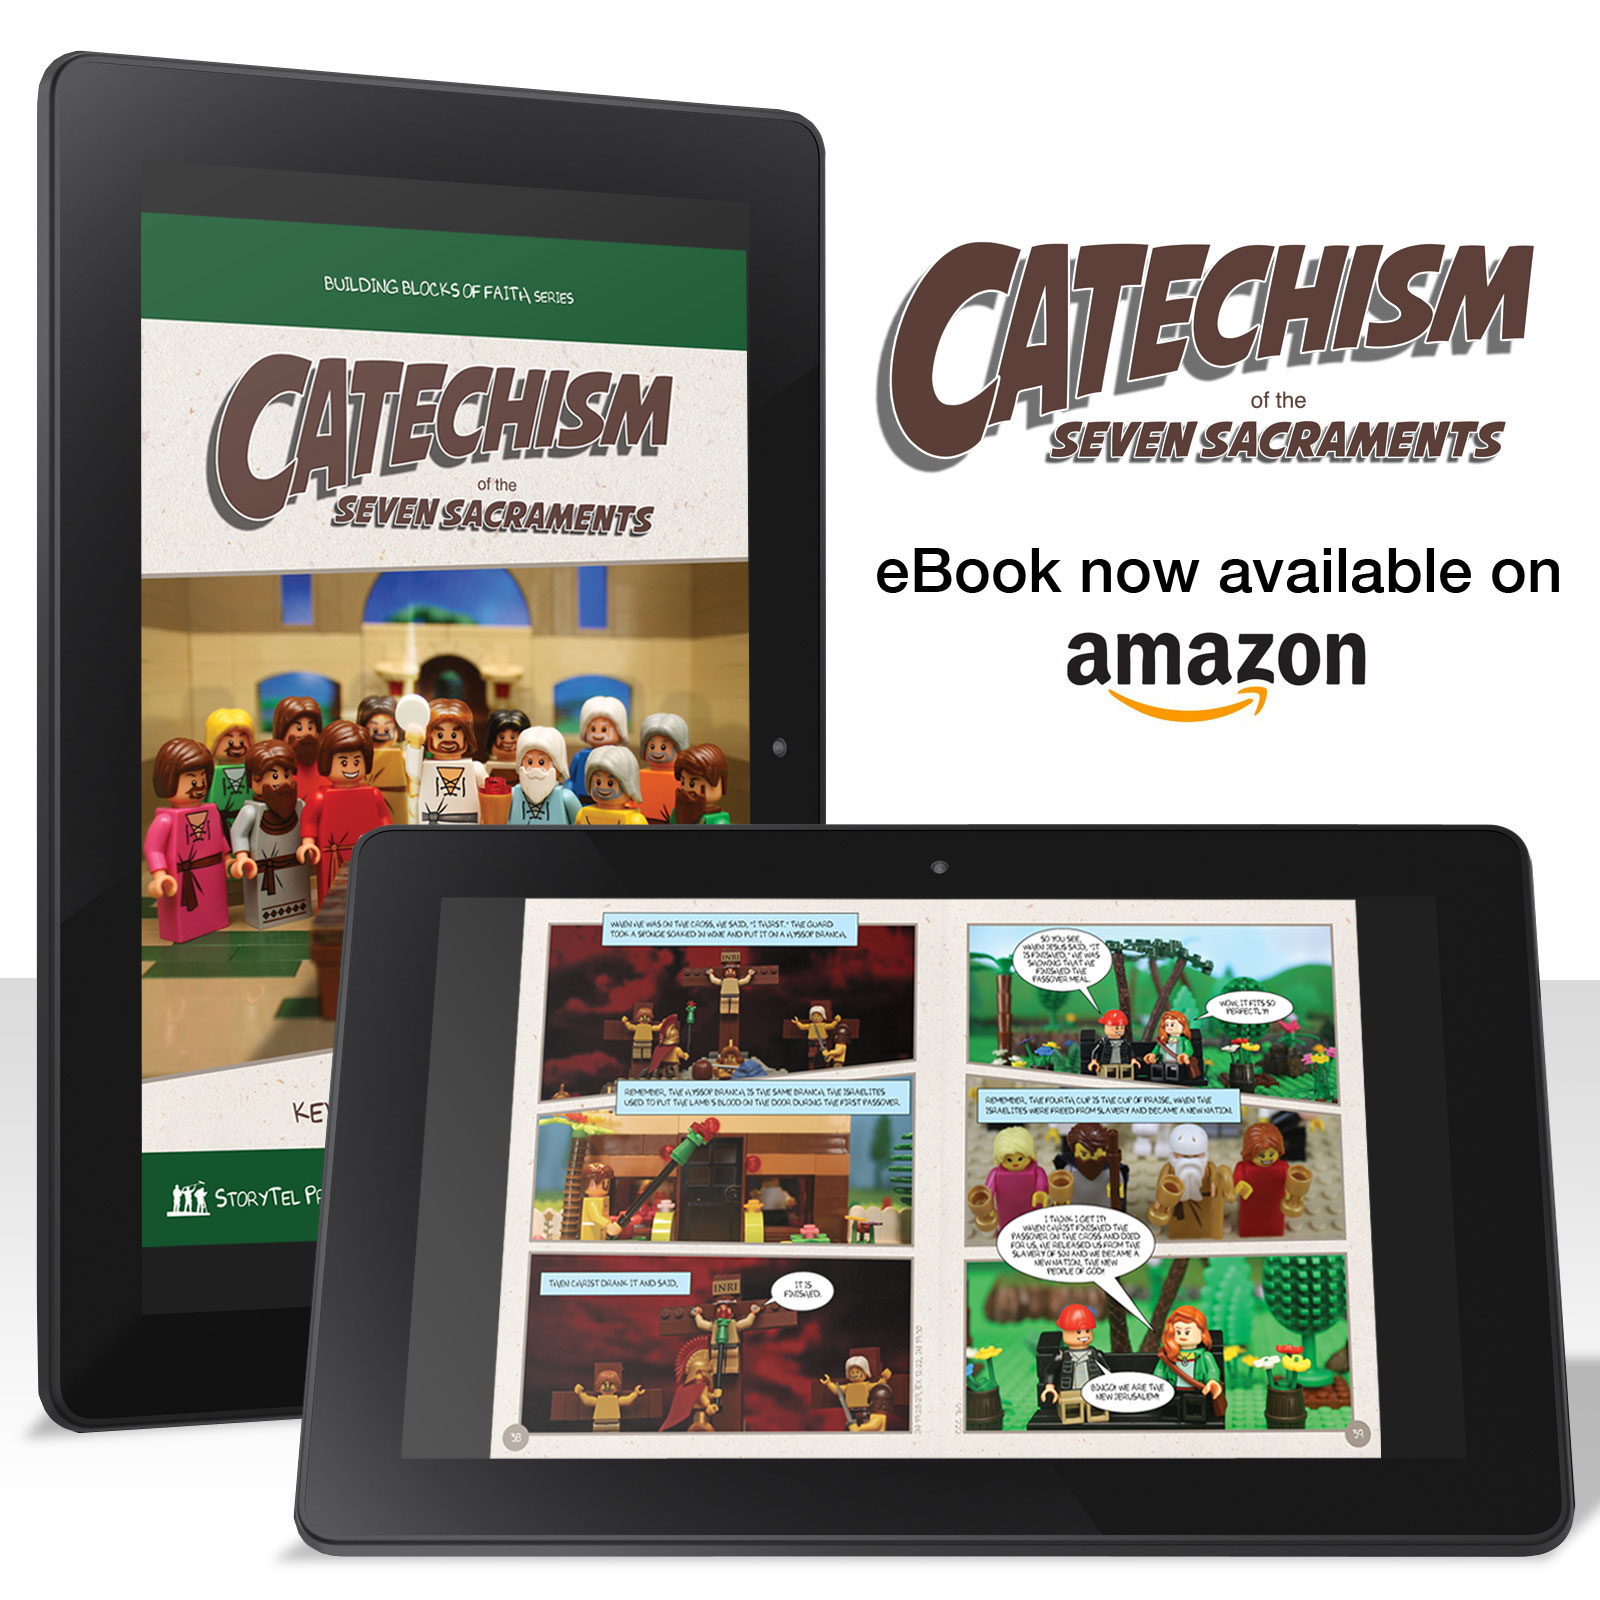 cat-Ebook-on-kindle-w-title-and-just-amazon.jpg